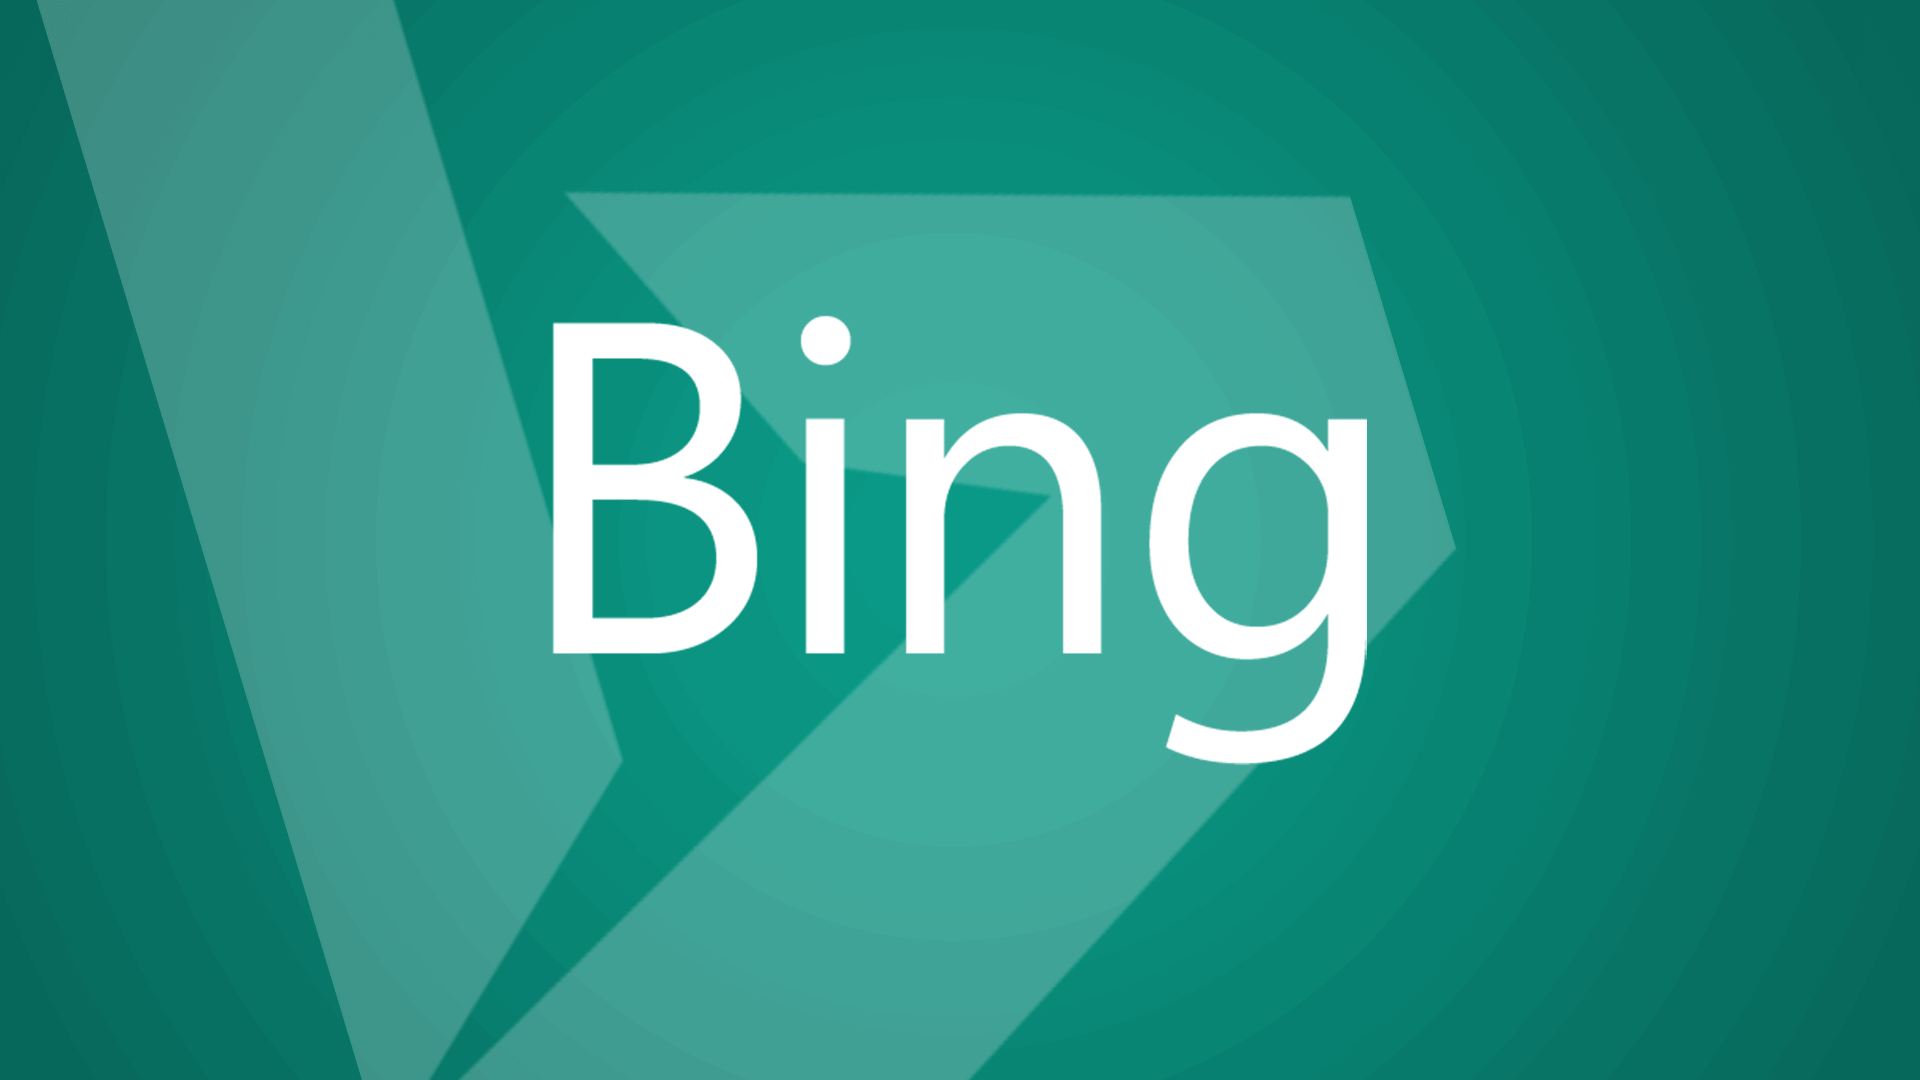 Big Surprising tips and tricks about bing search,bing webmaster tools, andbing for business. and more aboutbing image search,bing advertising, and also using advances ofbing for business.